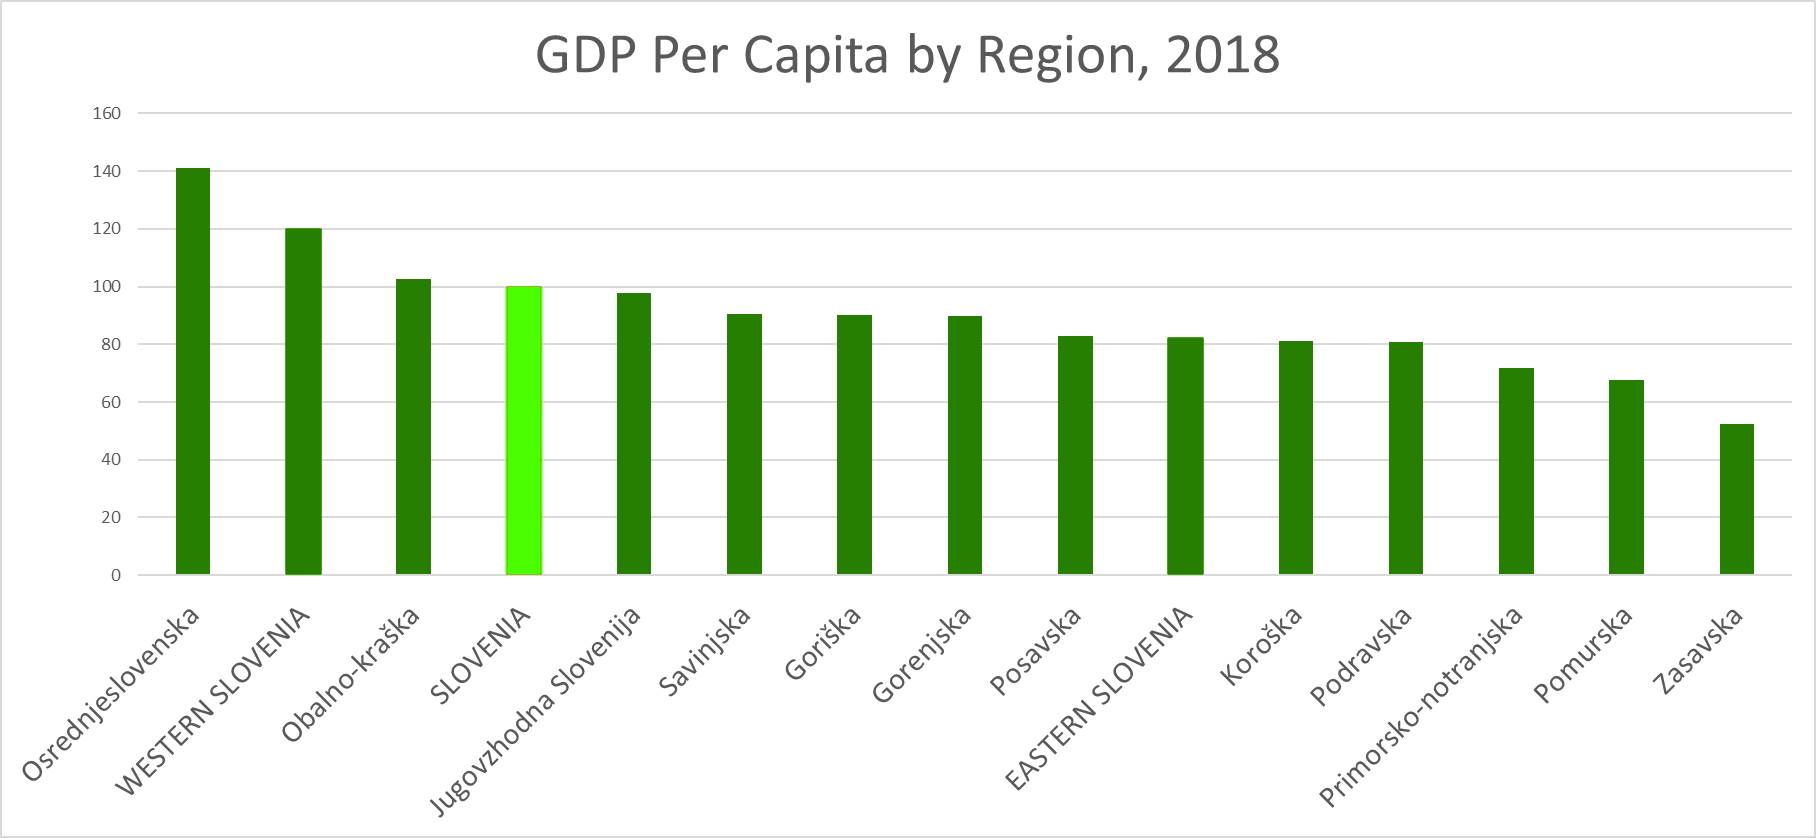 GDP per capita by region slovenia 2018 chart.png